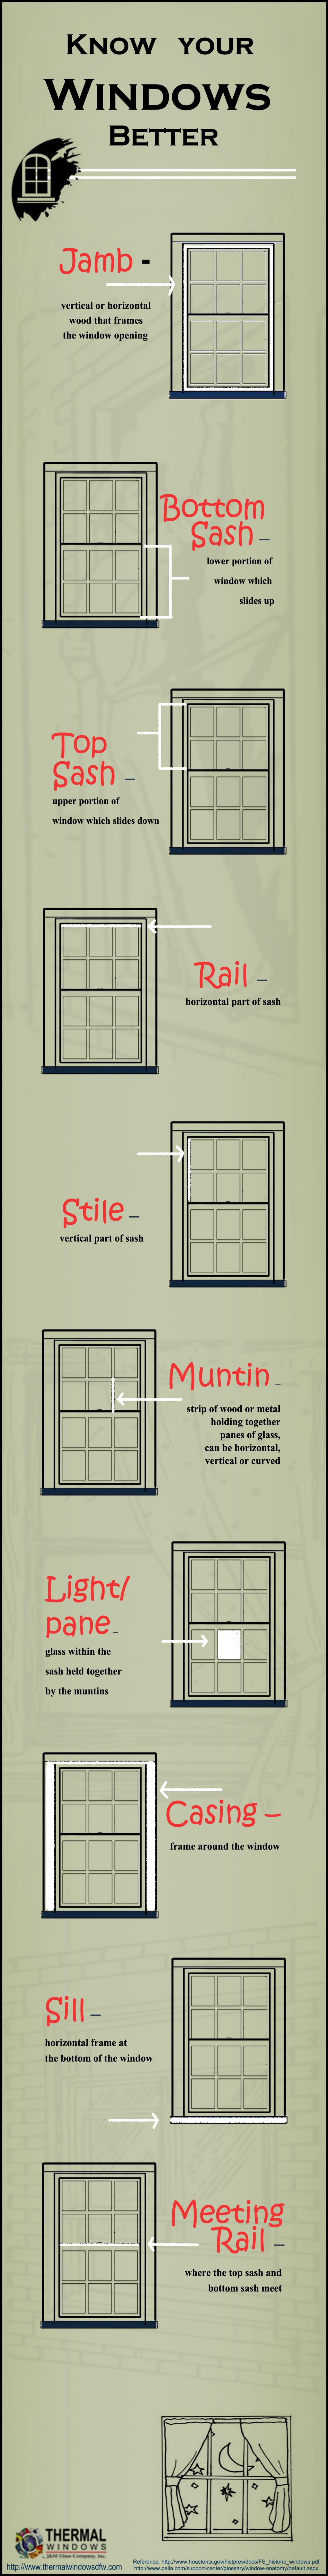 Know your Windows well Infographic